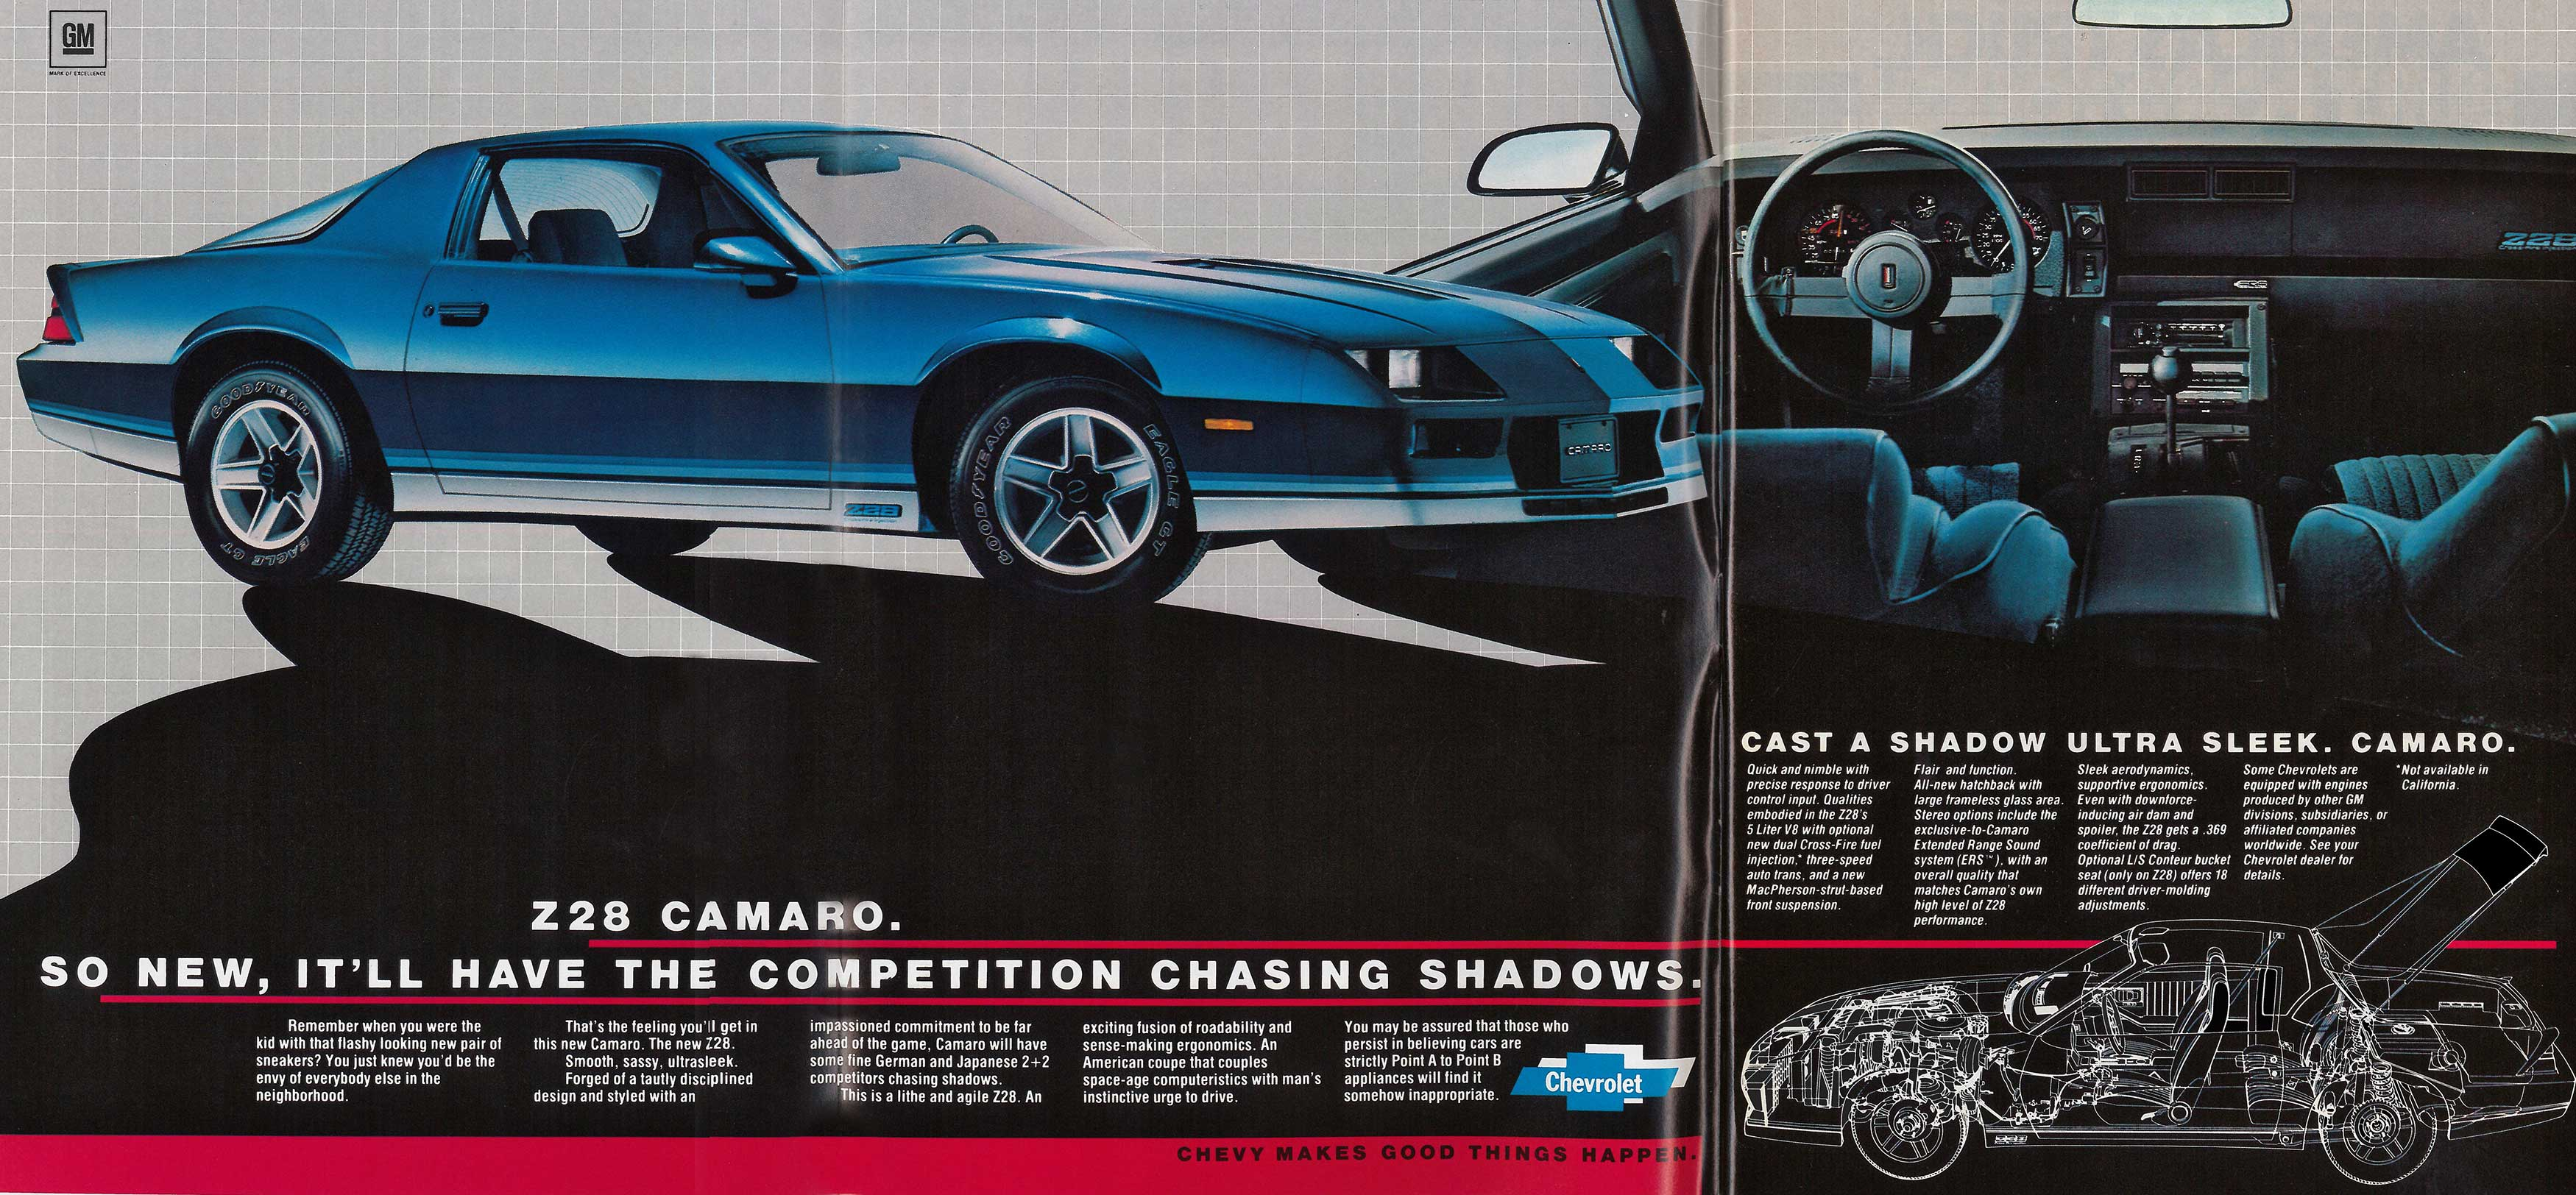 Vintage Chevy Camaro >> Coolest 3rd Gen Chevy Camaro Ads of the 1980s! | Chevys Only